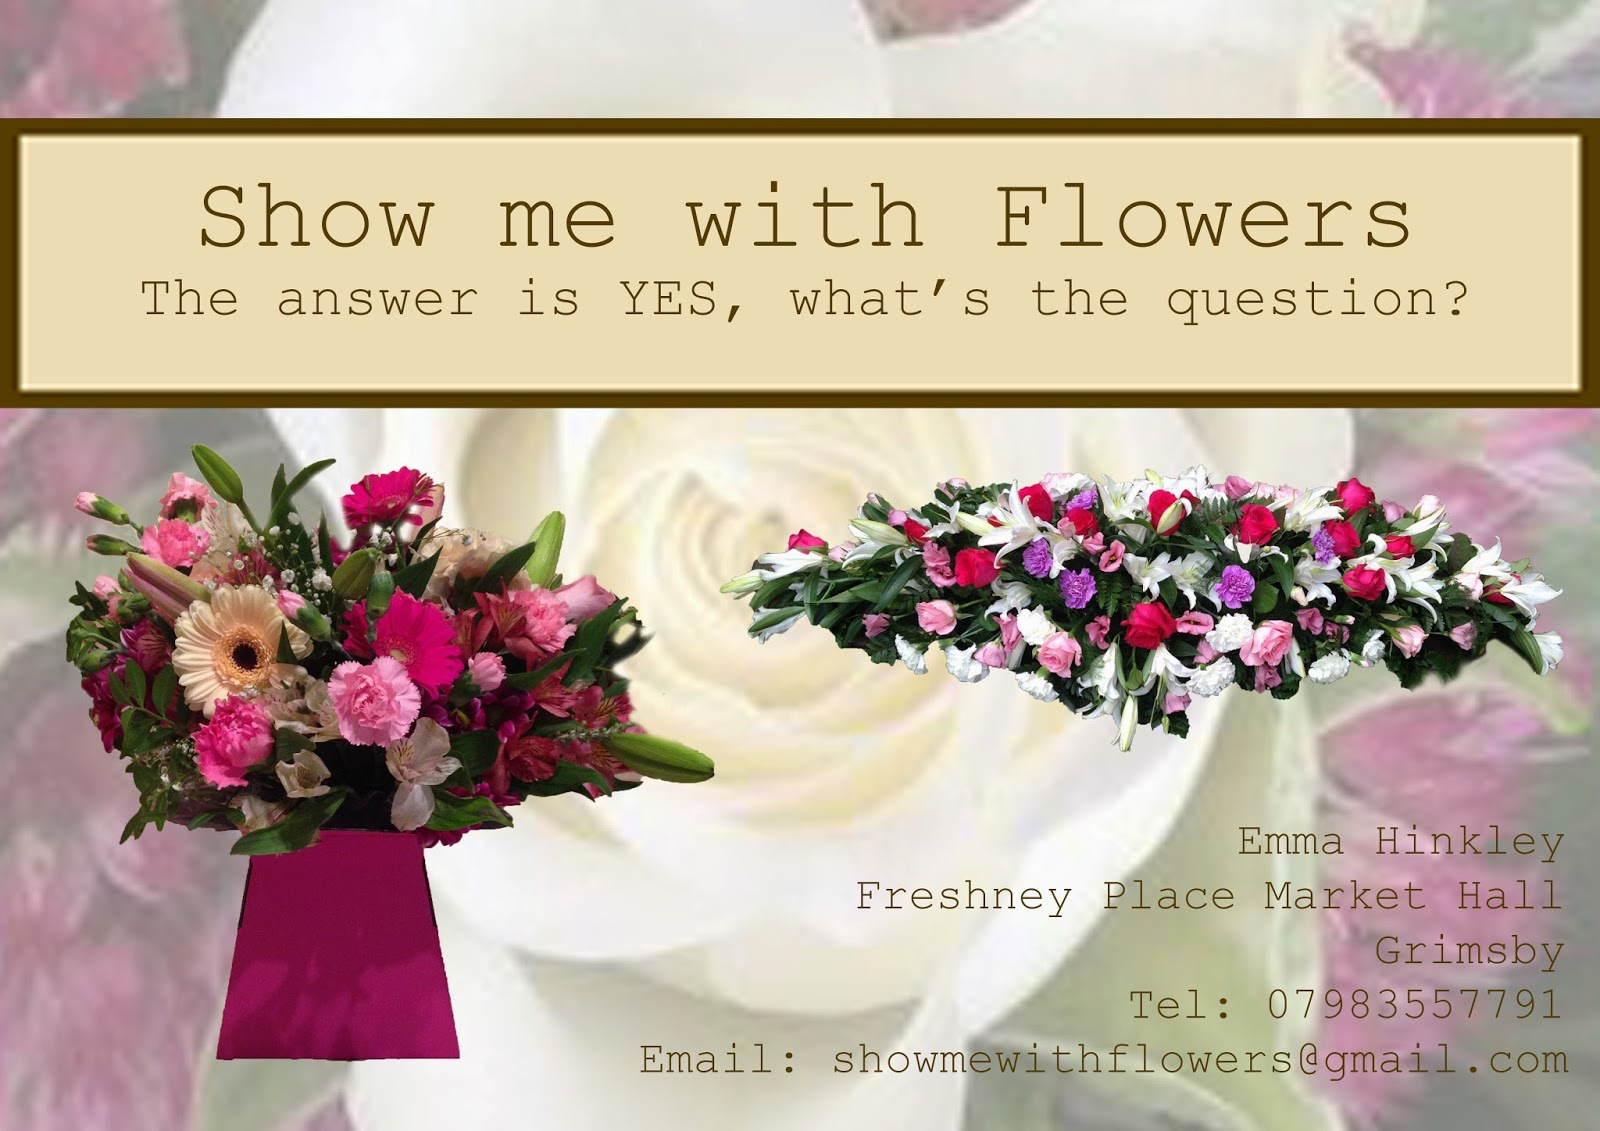 Show me with flowers april 2015 - Show me flowers ...